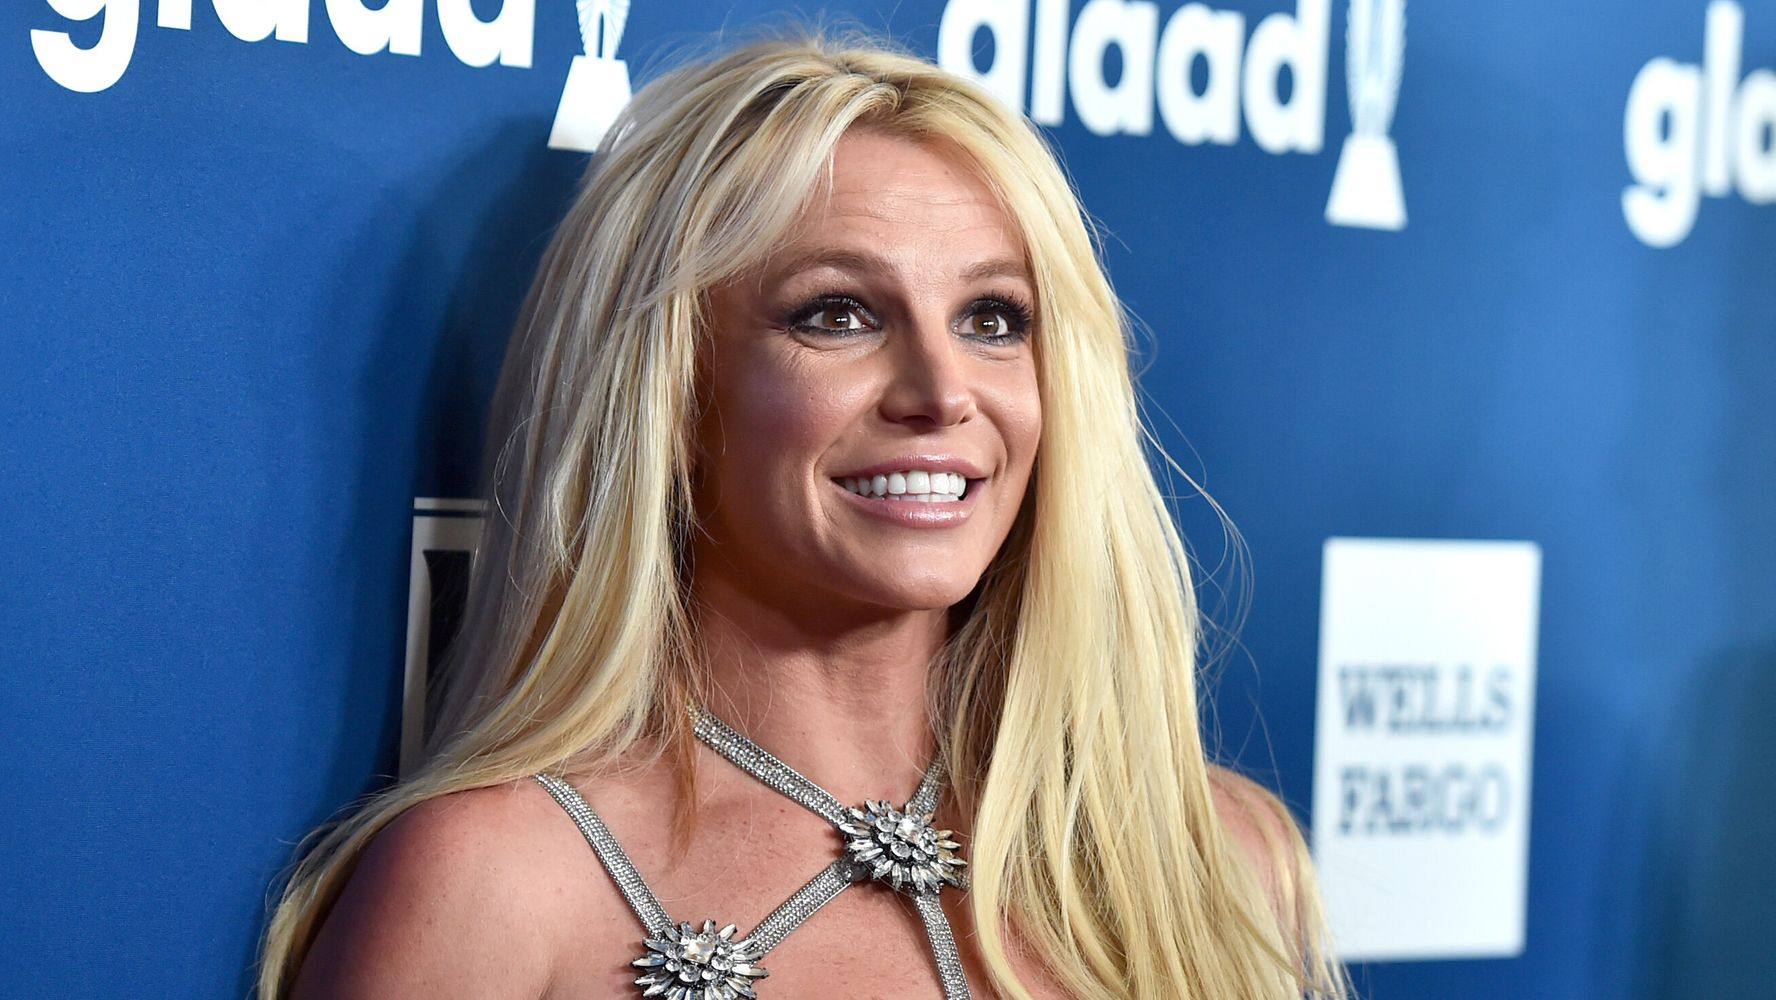 Britney Spears apologizes to fans for 'pretending I've been OK' on Instagram saying she was 'embarrassed to share' her trauma day after testifying about cruelty of conservatorship